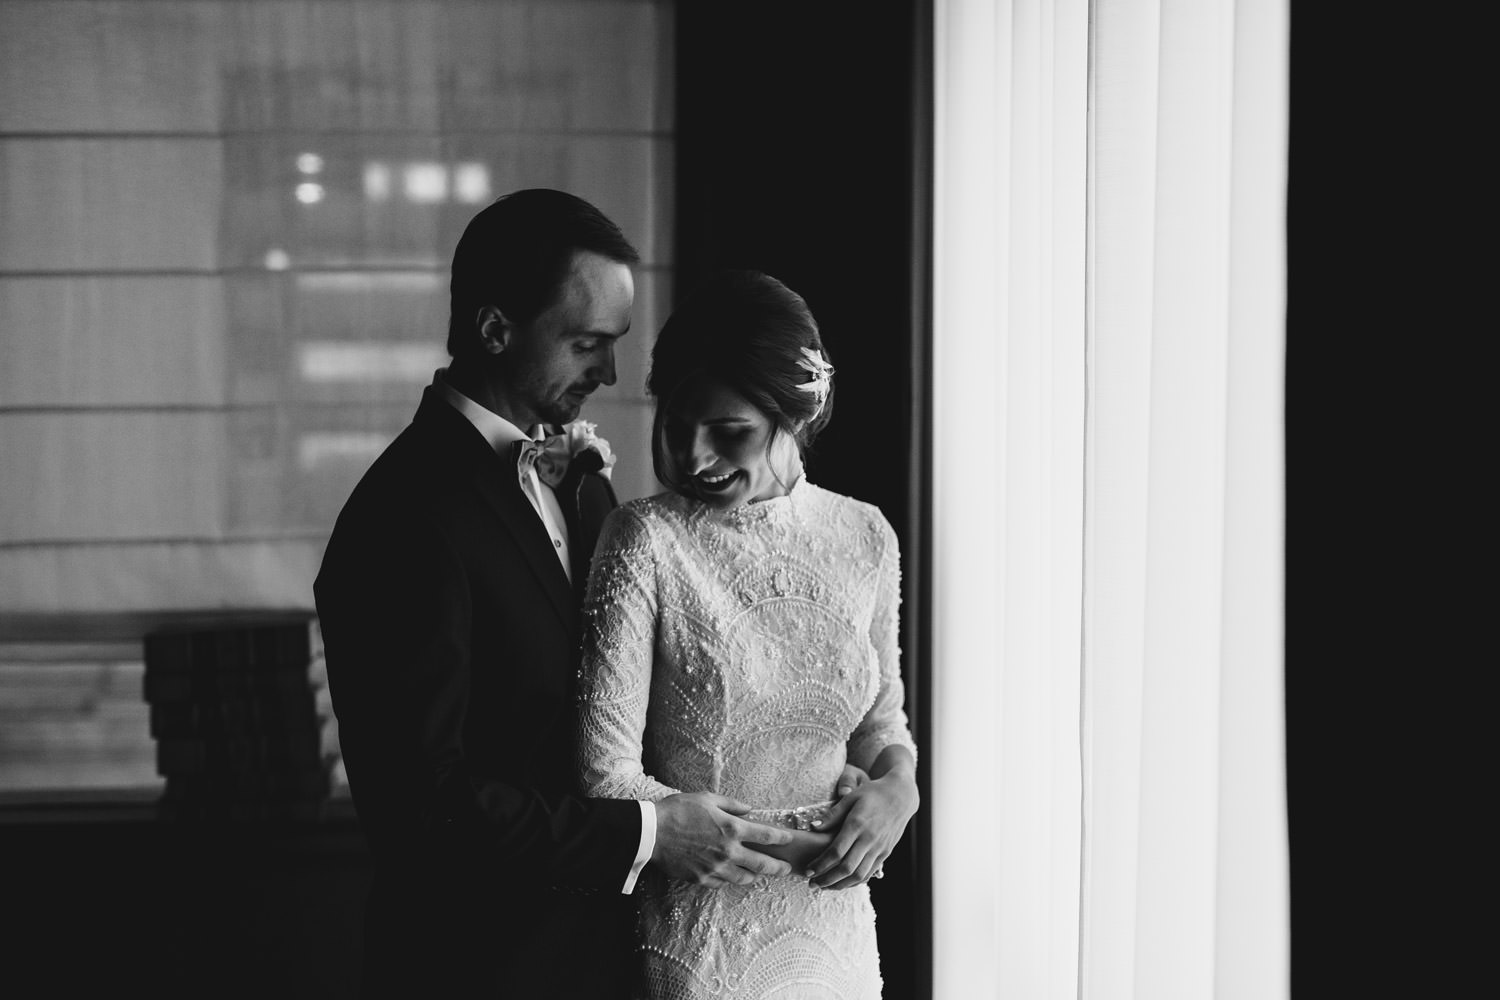 moody black and white portrait of the bride and groom taken at the gray hotel in Chicago